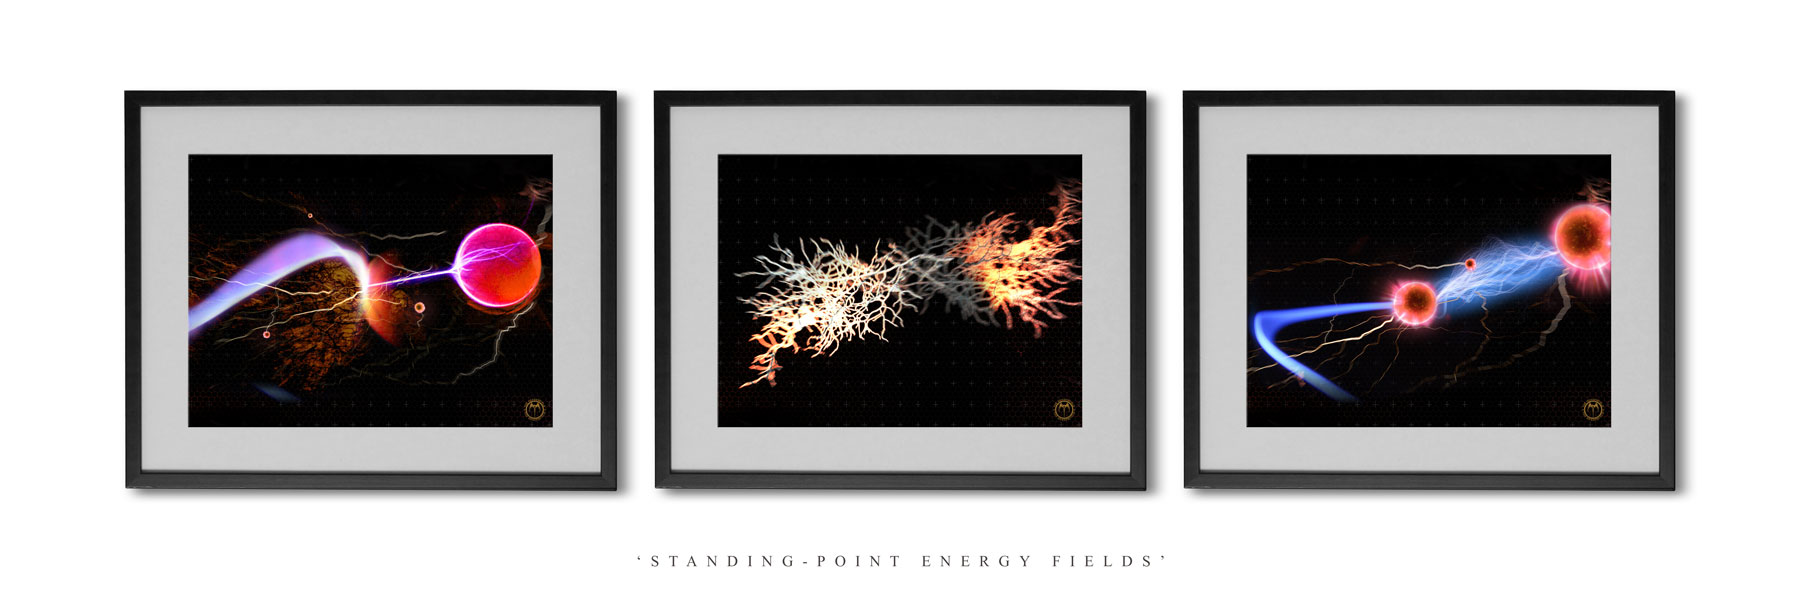 Print-Set--Standing-Point-Energy-Fields